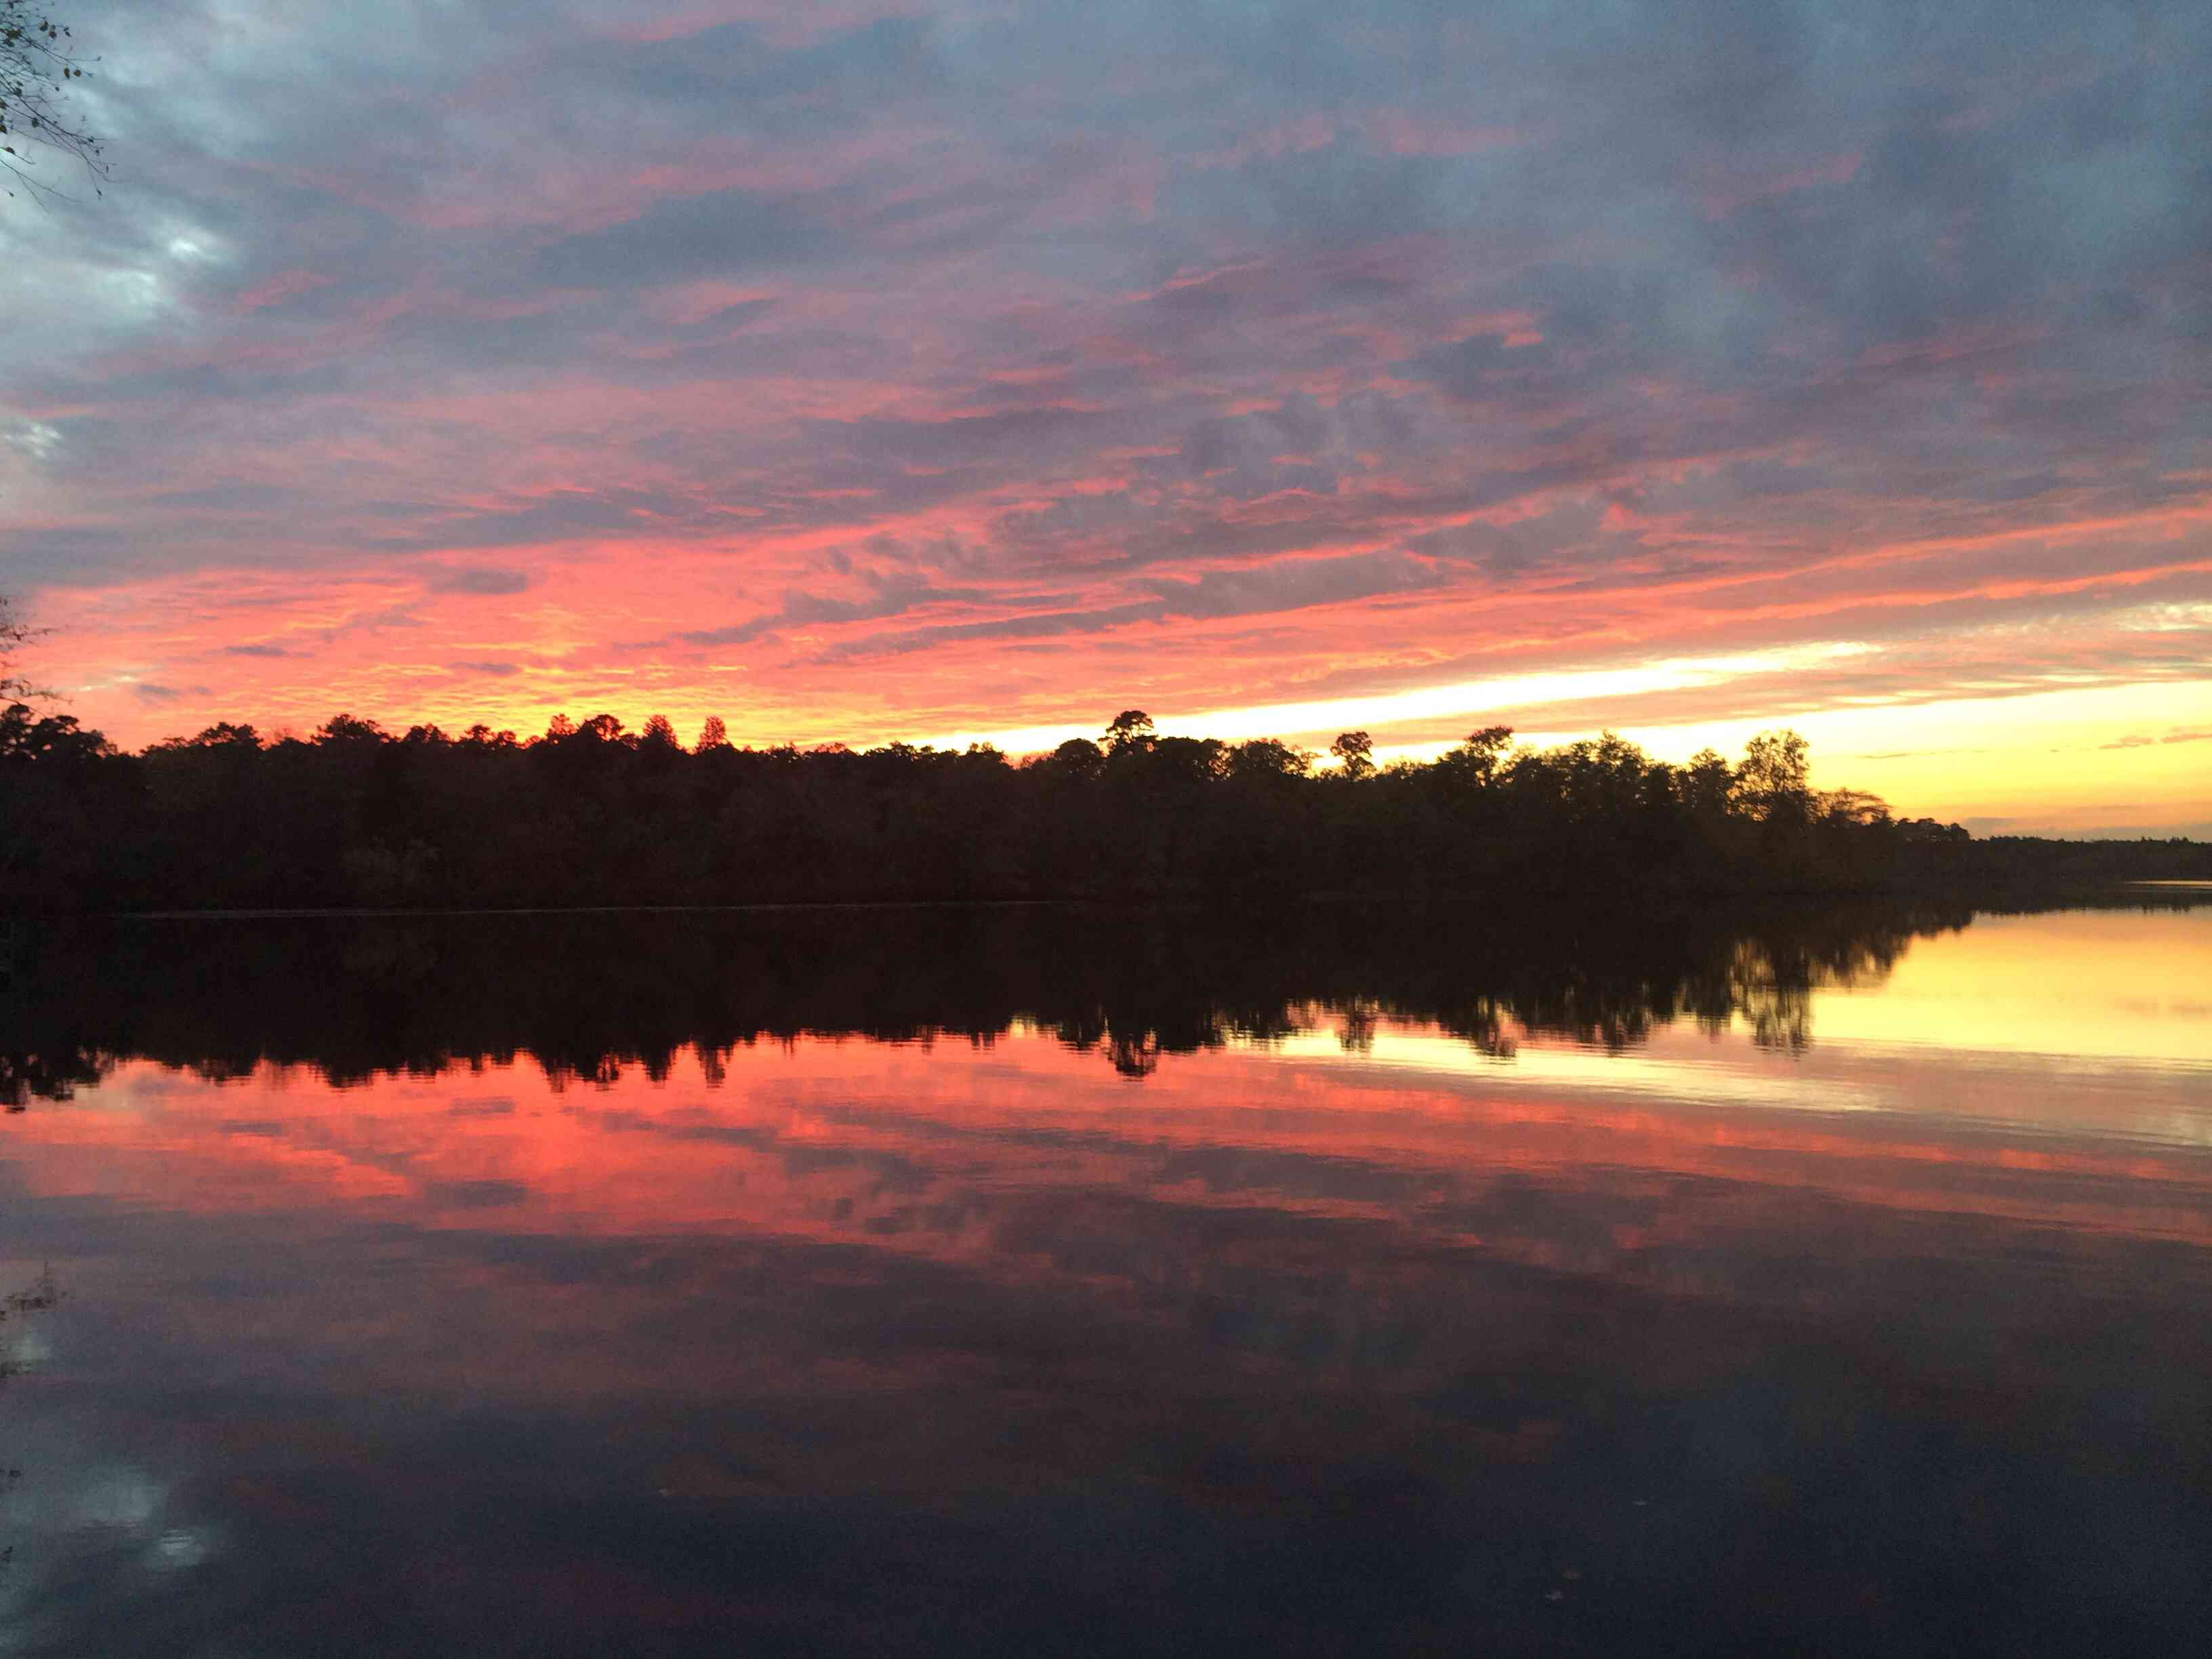 Sunset over a state park lake